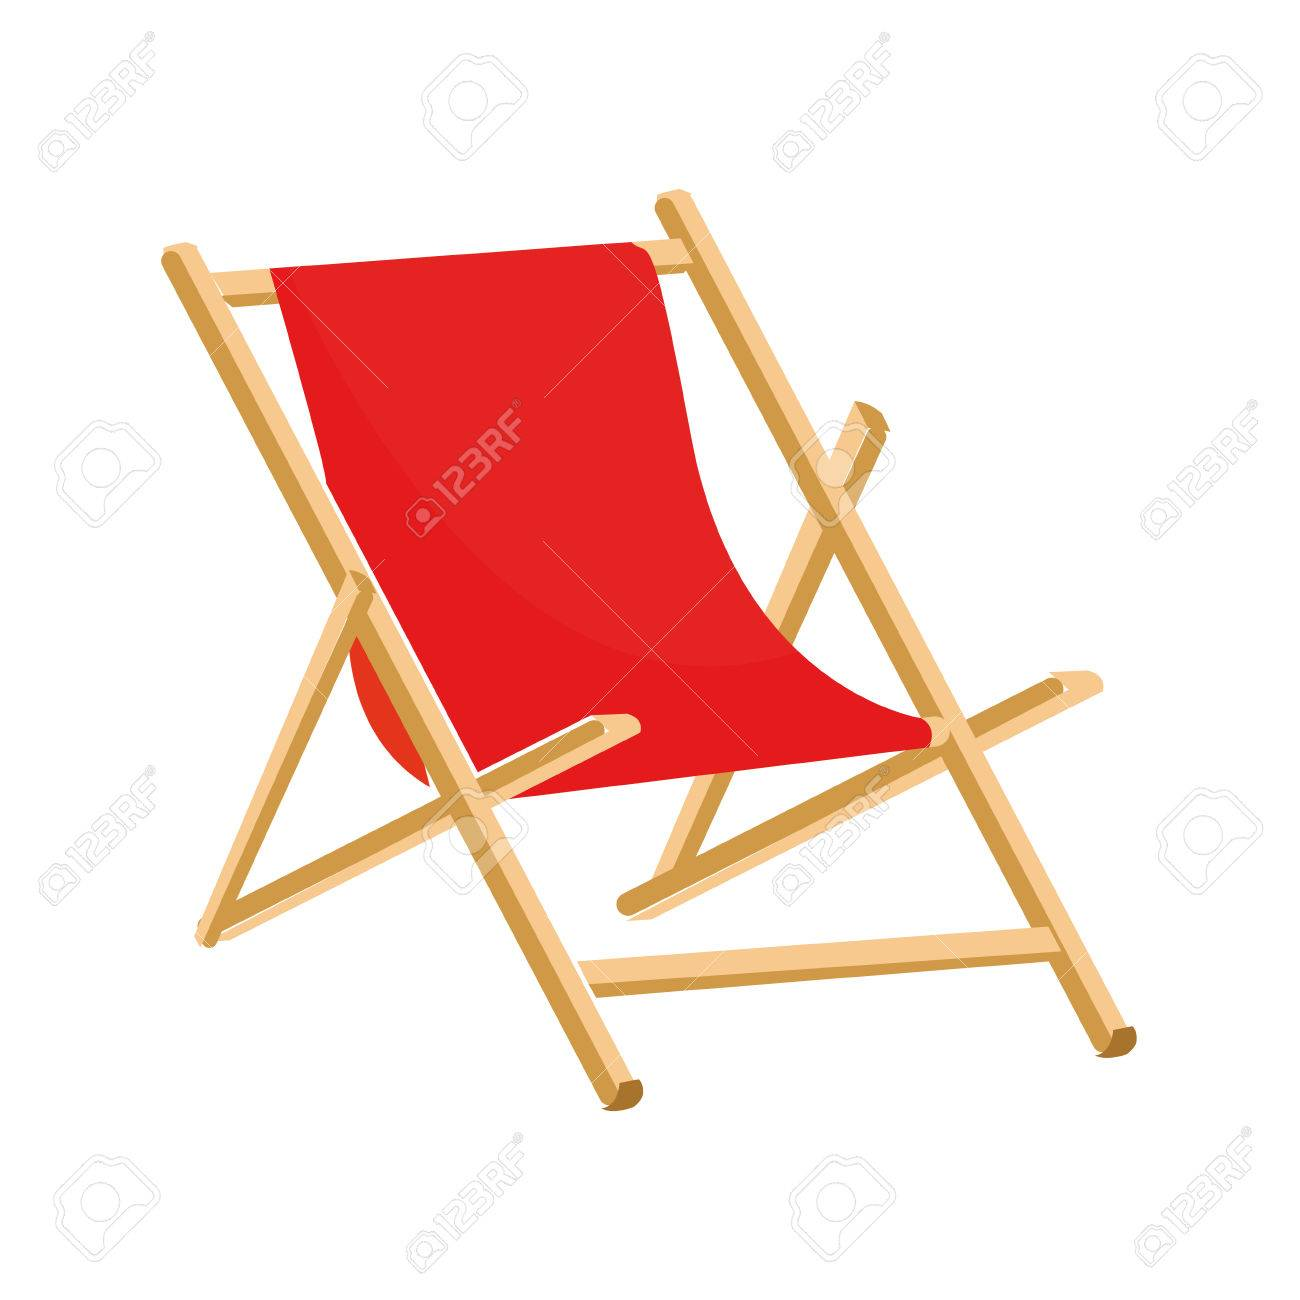 Beach Chair Vector flat design red beach chair icon vector illustration royalty free